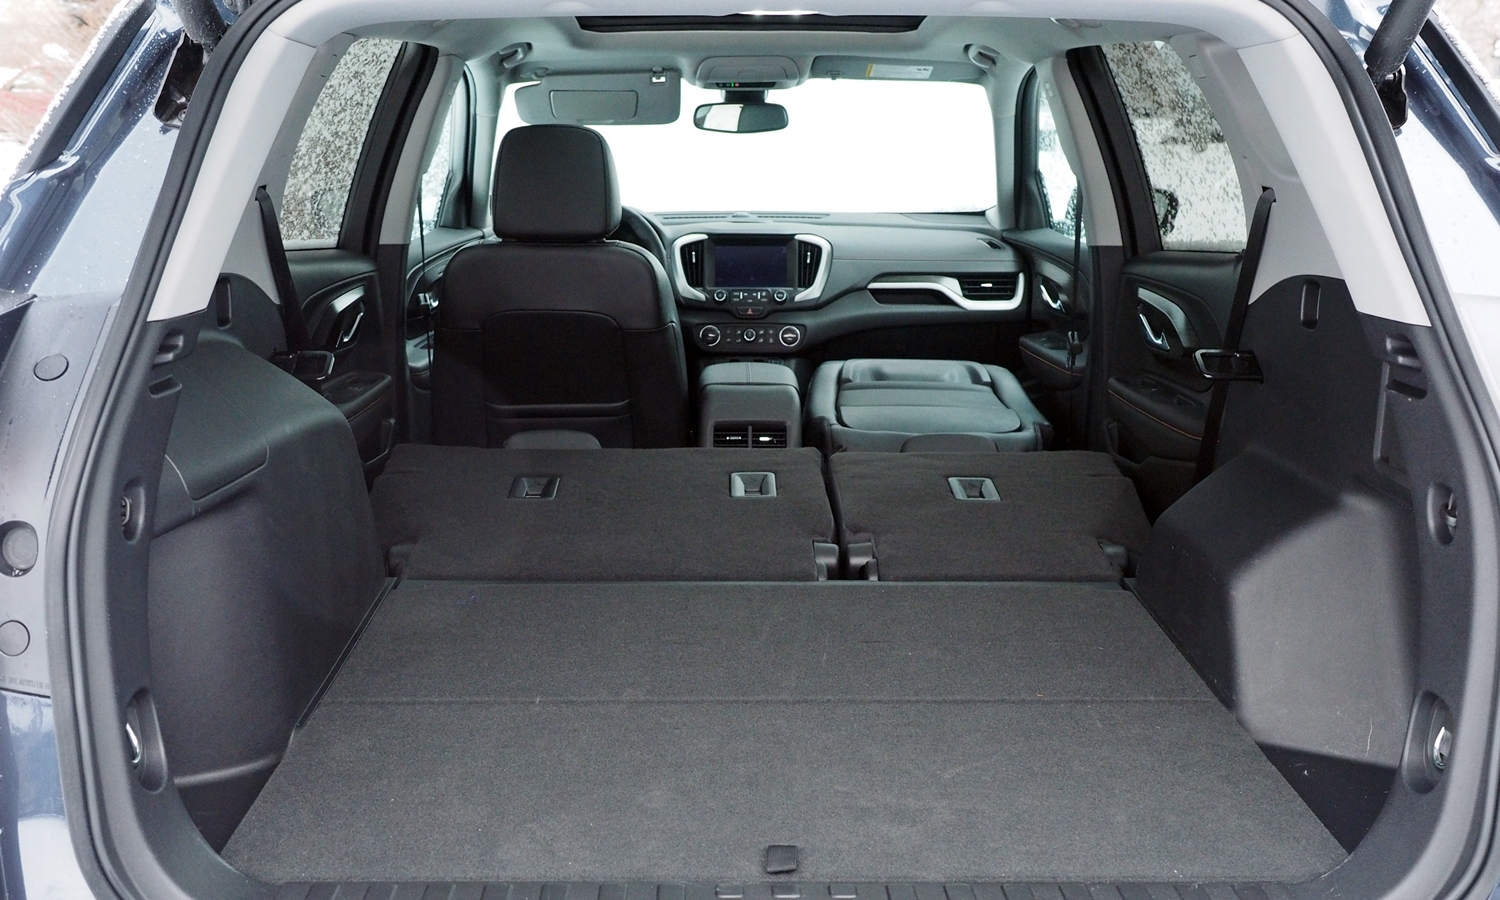 GMC Terrain Photos: 2018 GMC Terrain cargo area all seats folded